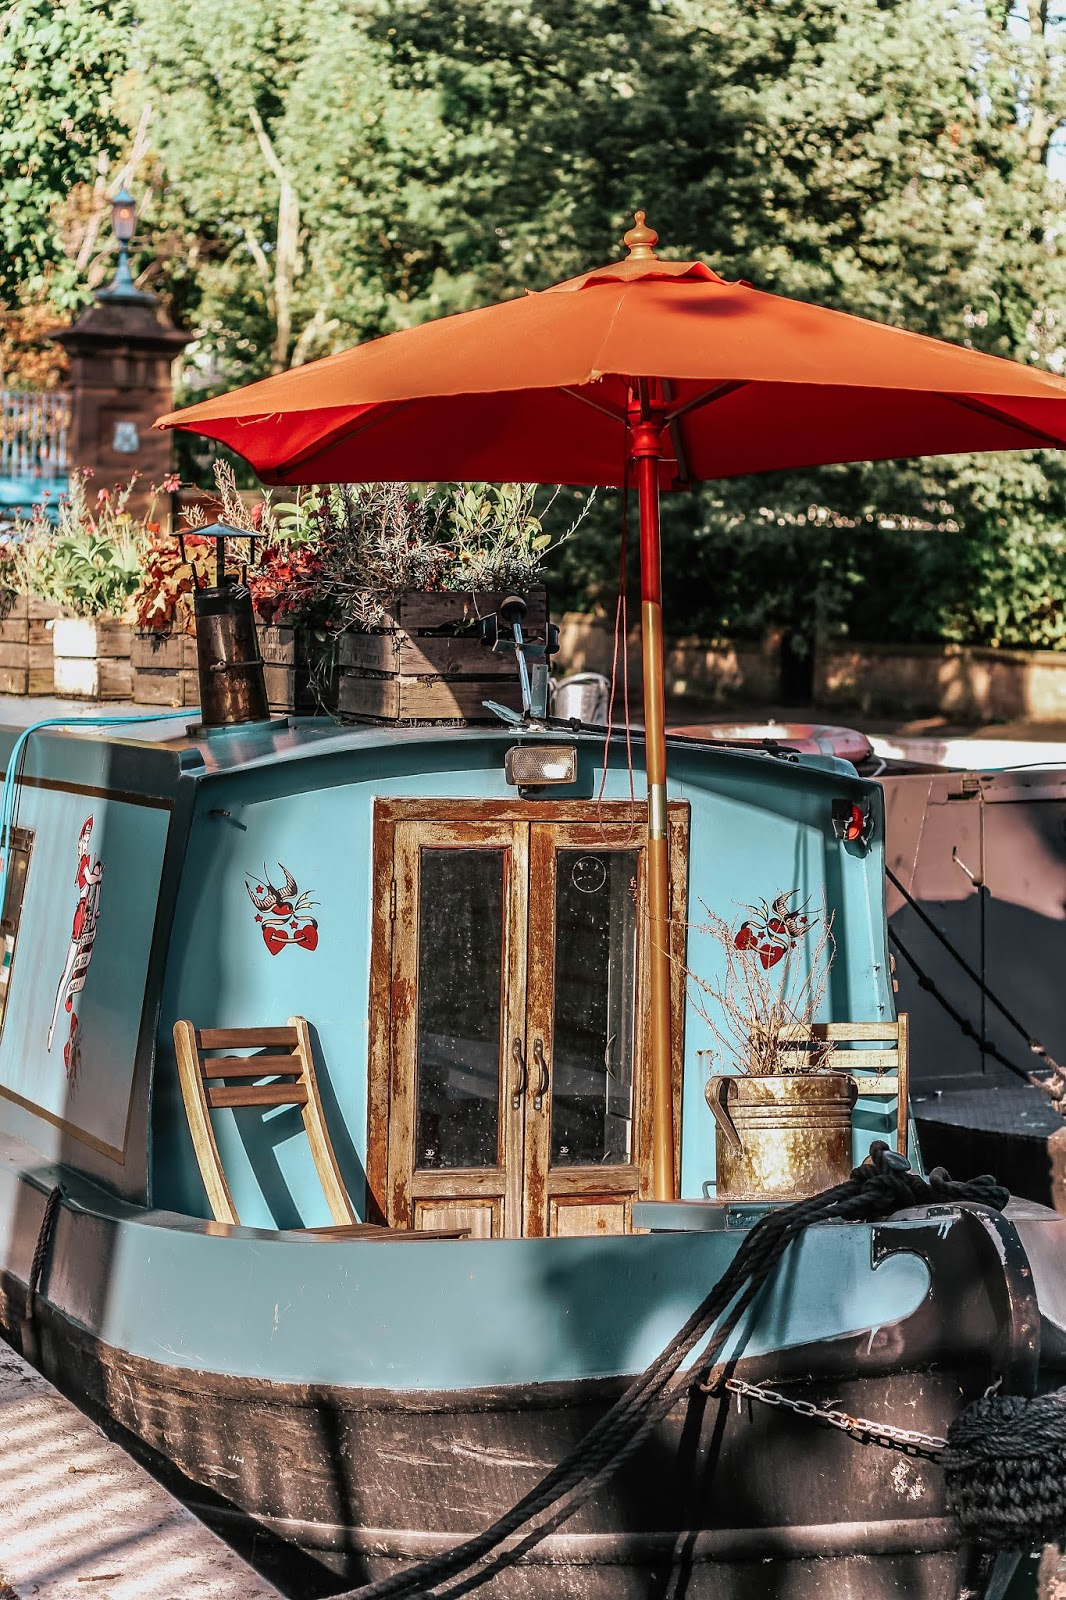 Little Venice London Canal Blue Boat and Parasol